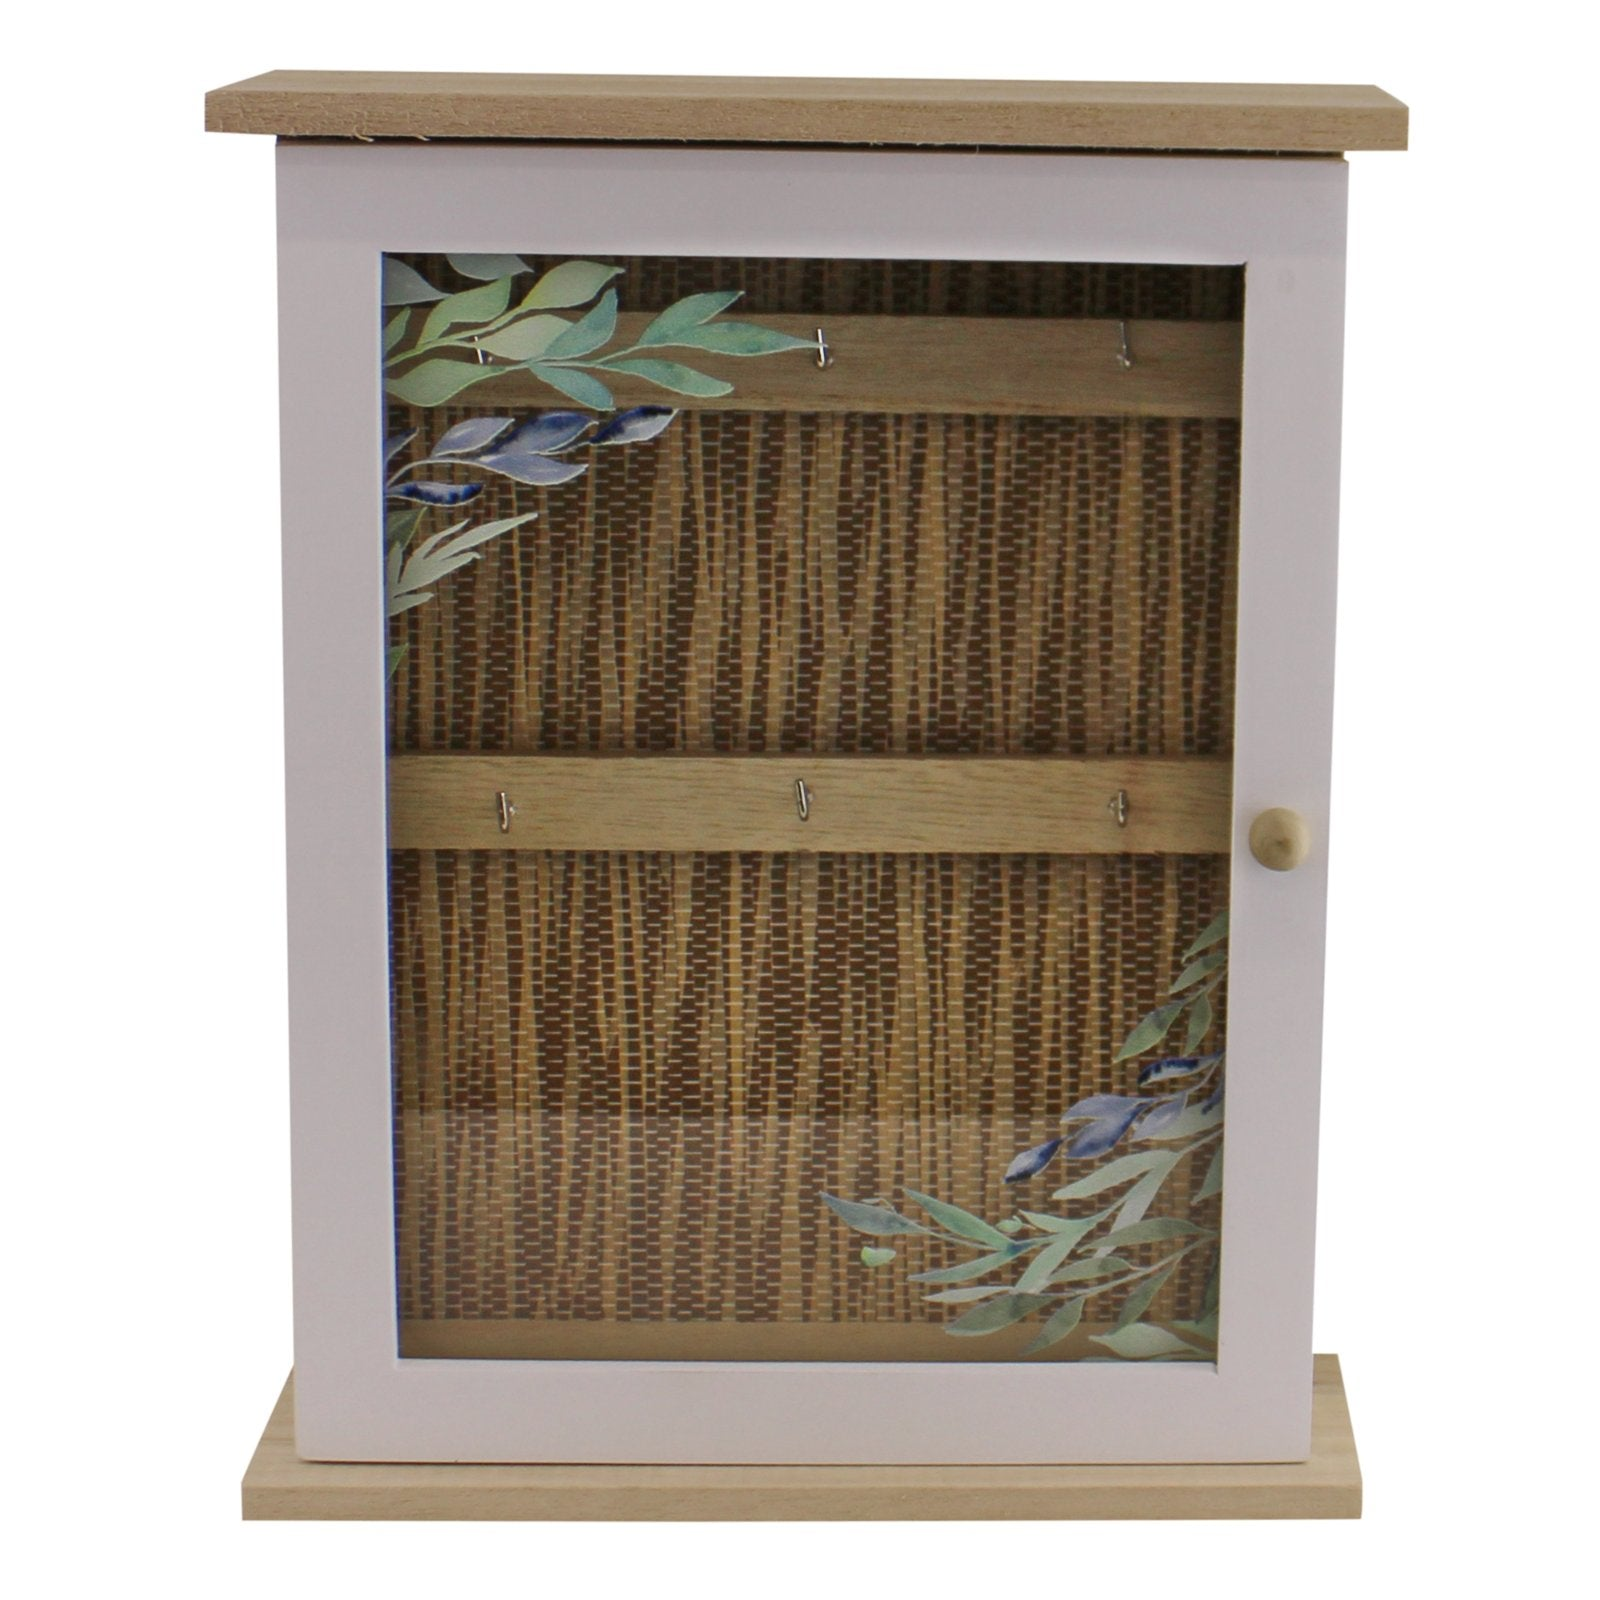 Olive Grove Key Storage Box, Furniture by Low Cost Gifts